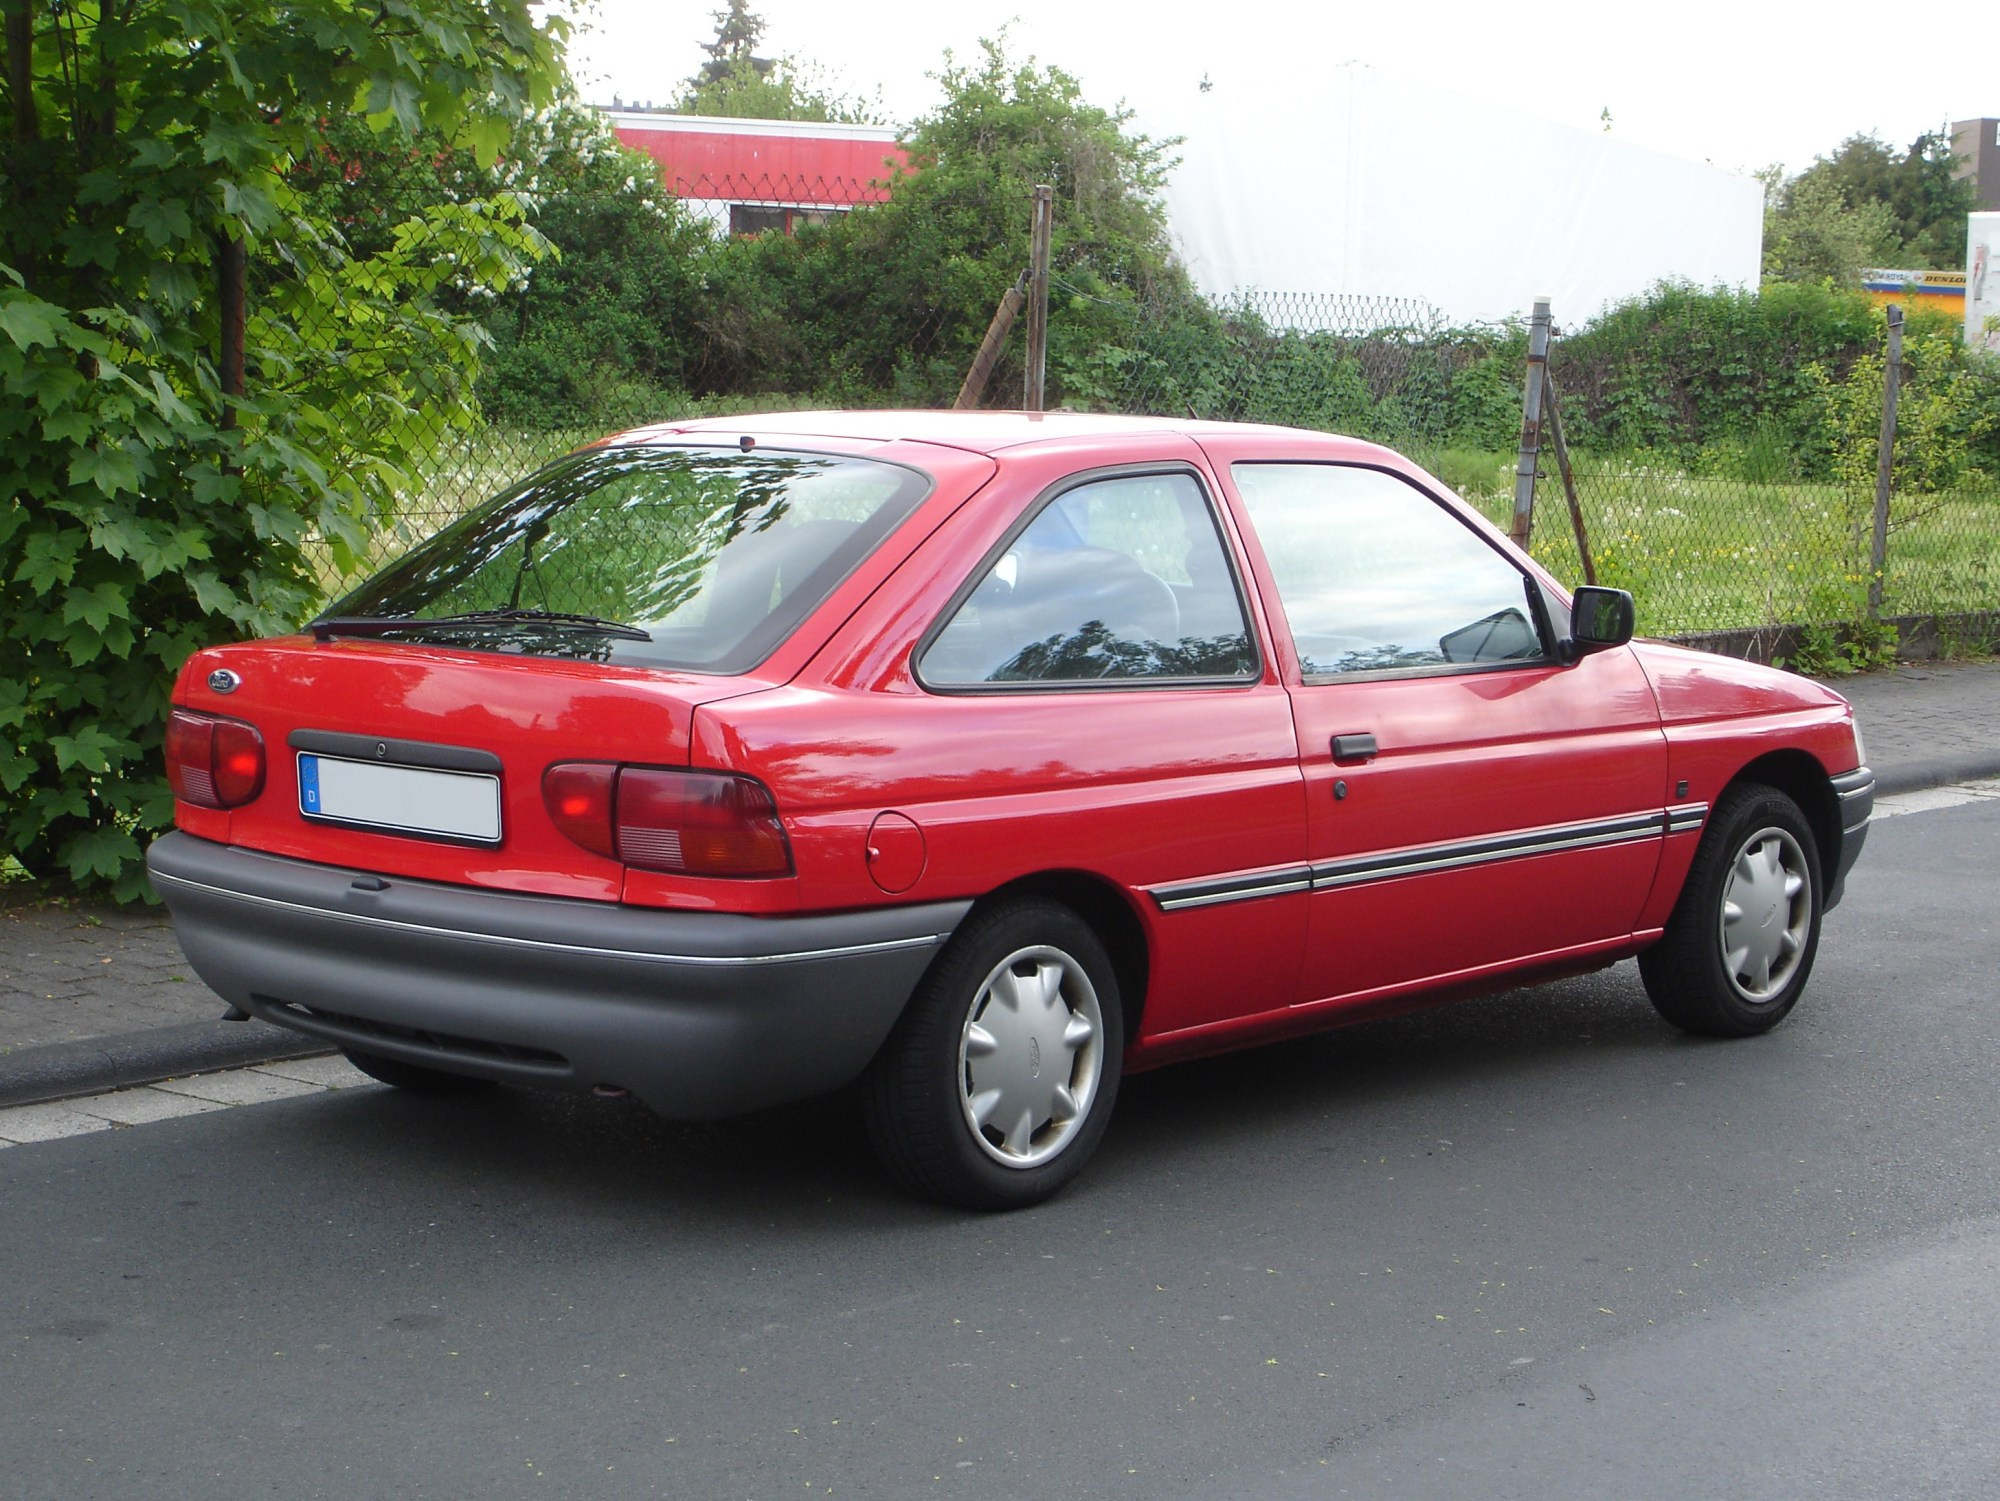 hight resolution of cars ford scorpio i hatch gge 1993 8